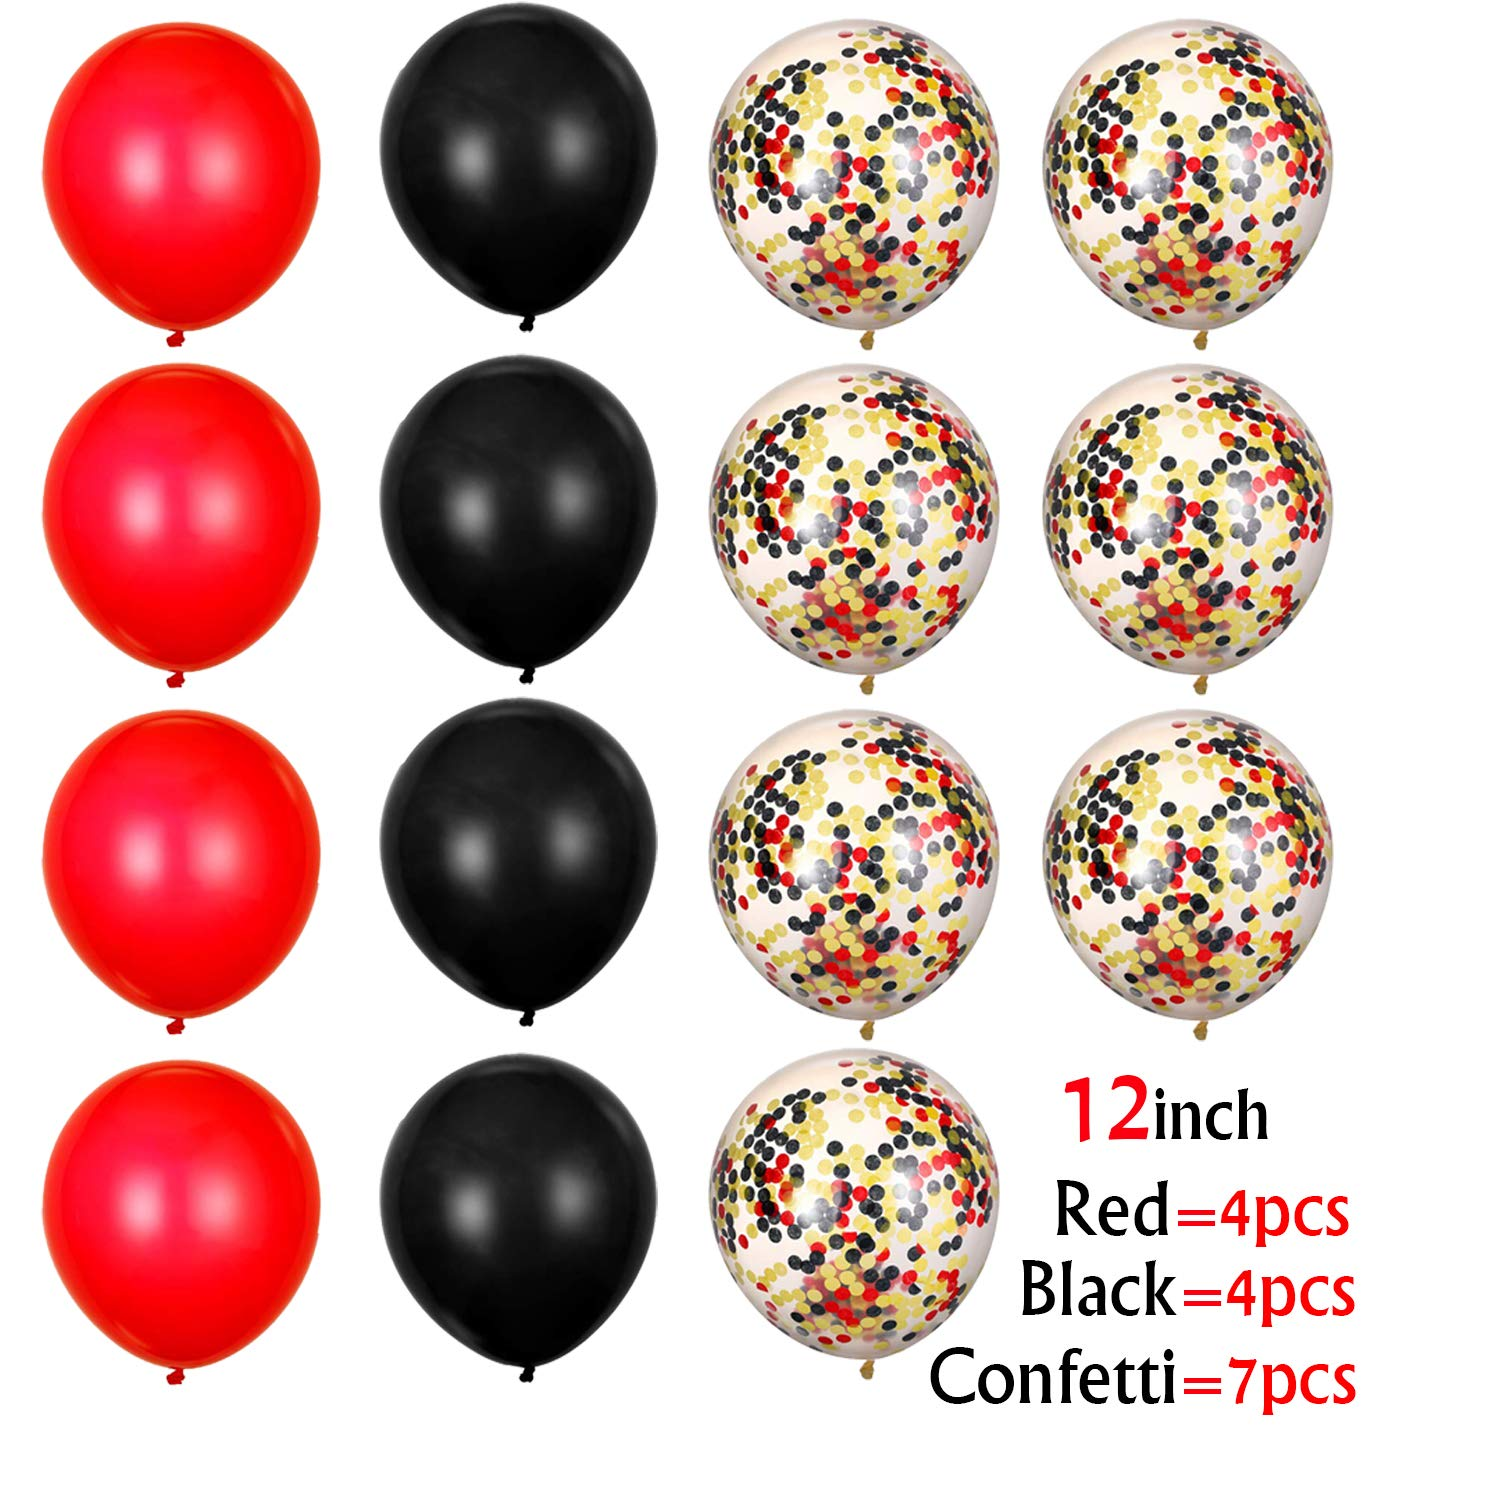 Black and Red 40th Birthday Decorations Red Happy Birthday Balloons Black Foil Fringe Curtain for Photo Booth Backdrop Paper Garland Red Number 40 Balloons 40 Birthday Decorations for Women Men